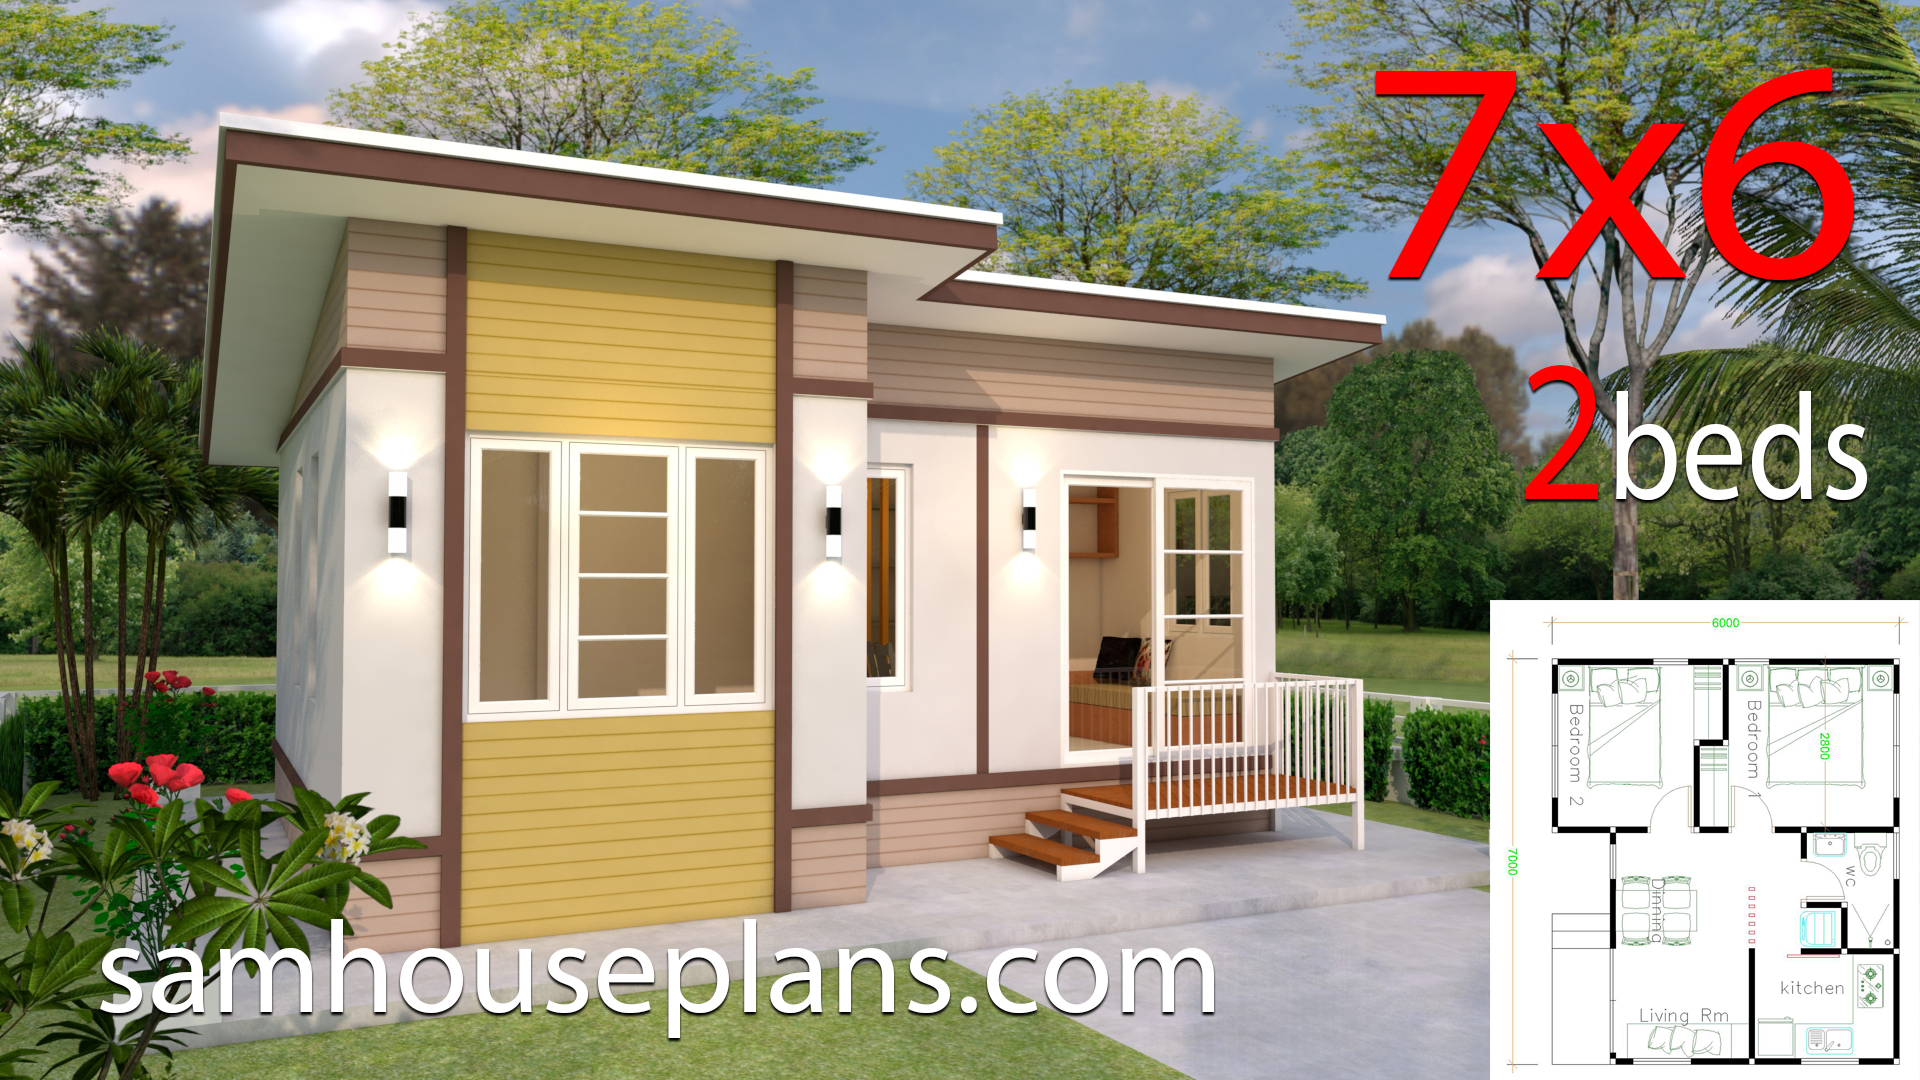 Small House Design 7x6 with 2 Bedrooms - SamHousePlans